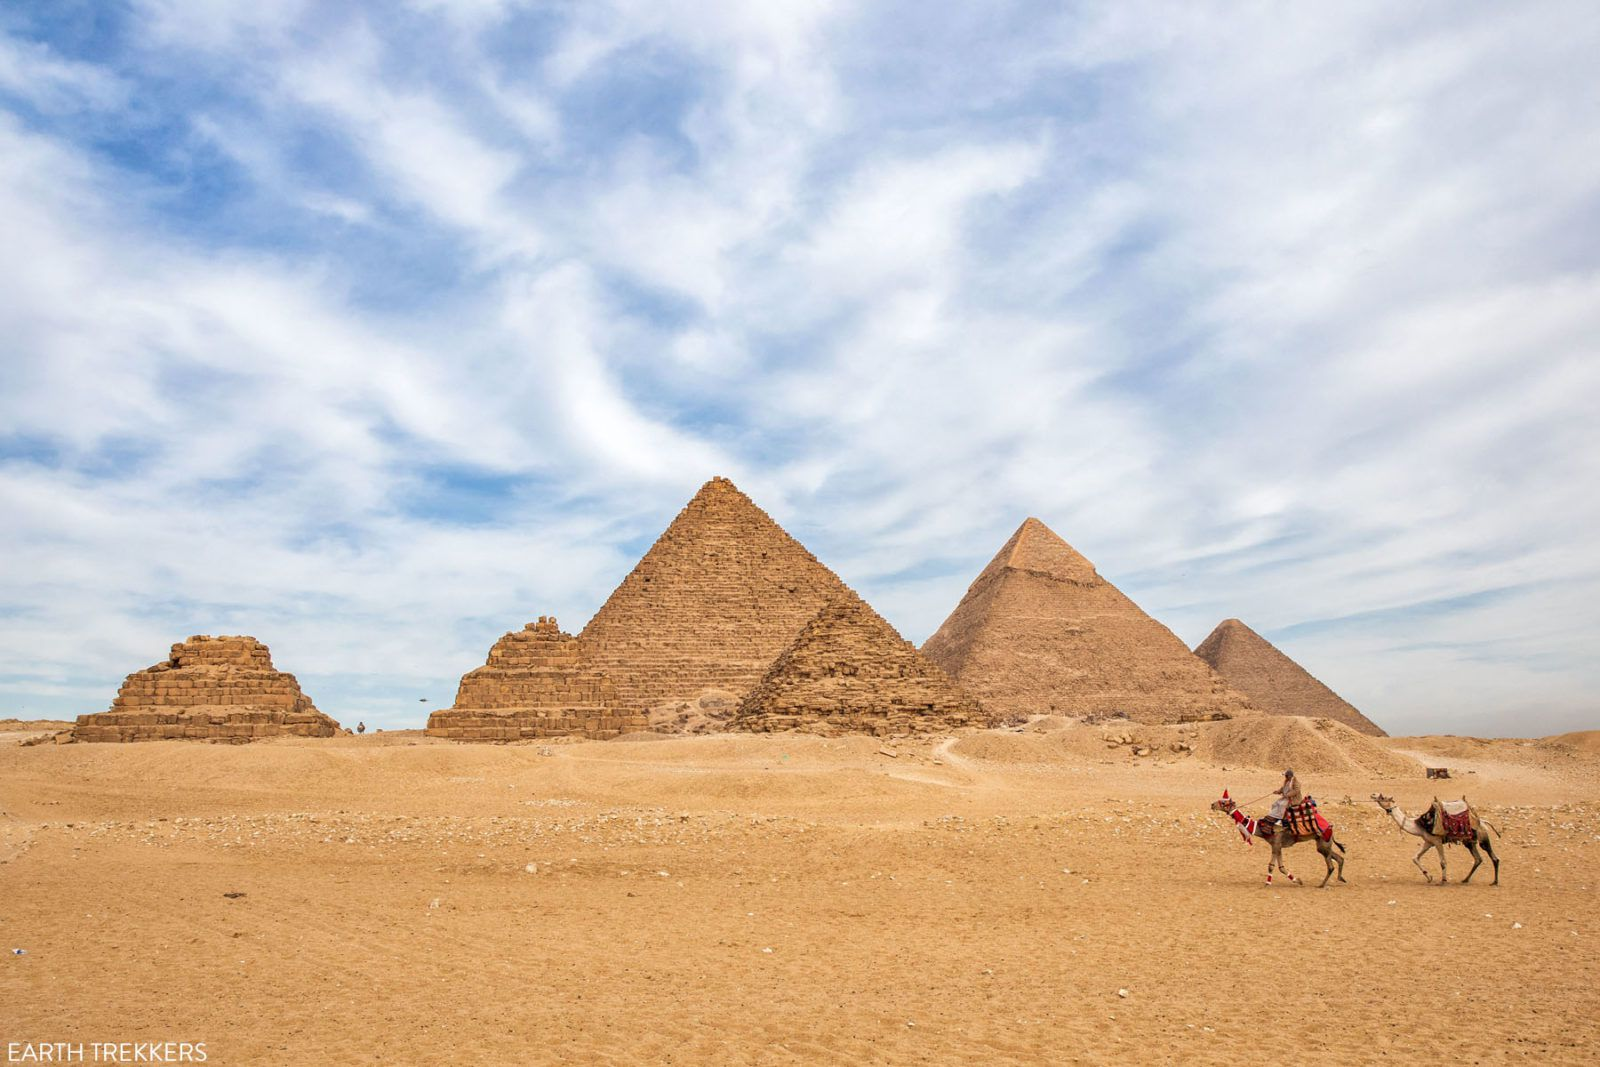 Best View of Pyramids of Giza